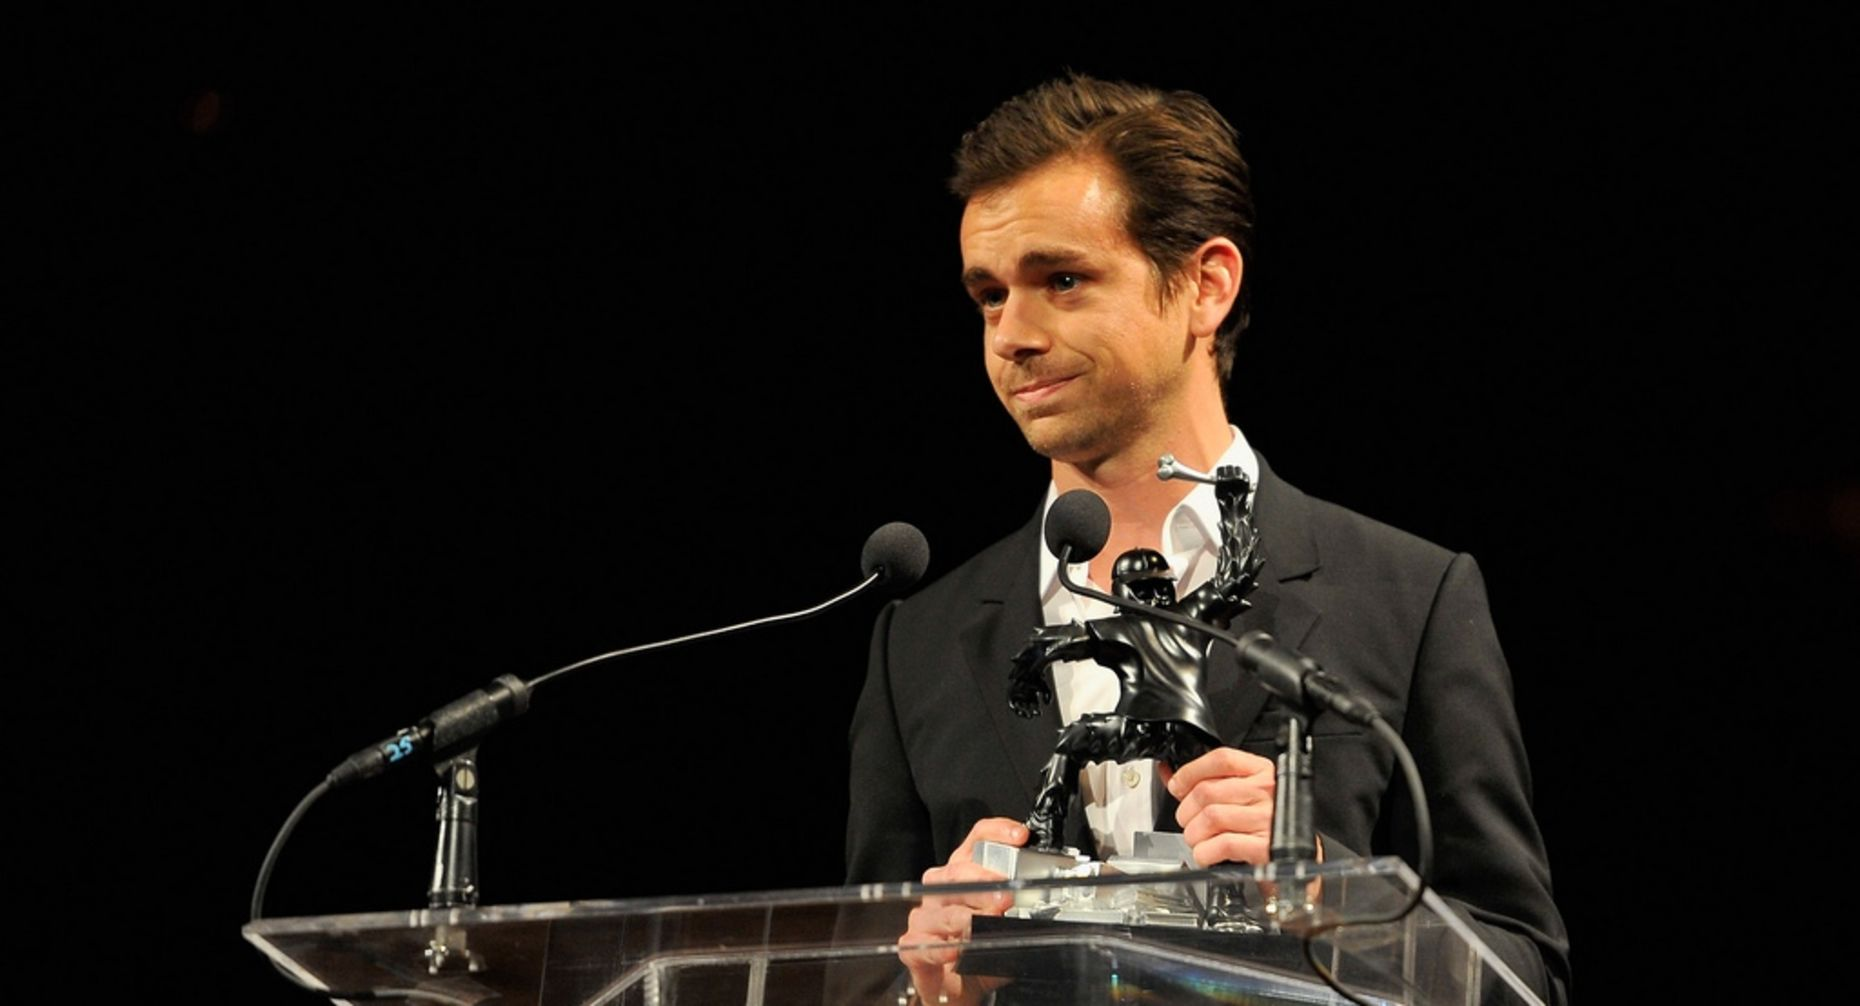 Square CEO Jack Dorsey. Credit: TechCrunch.